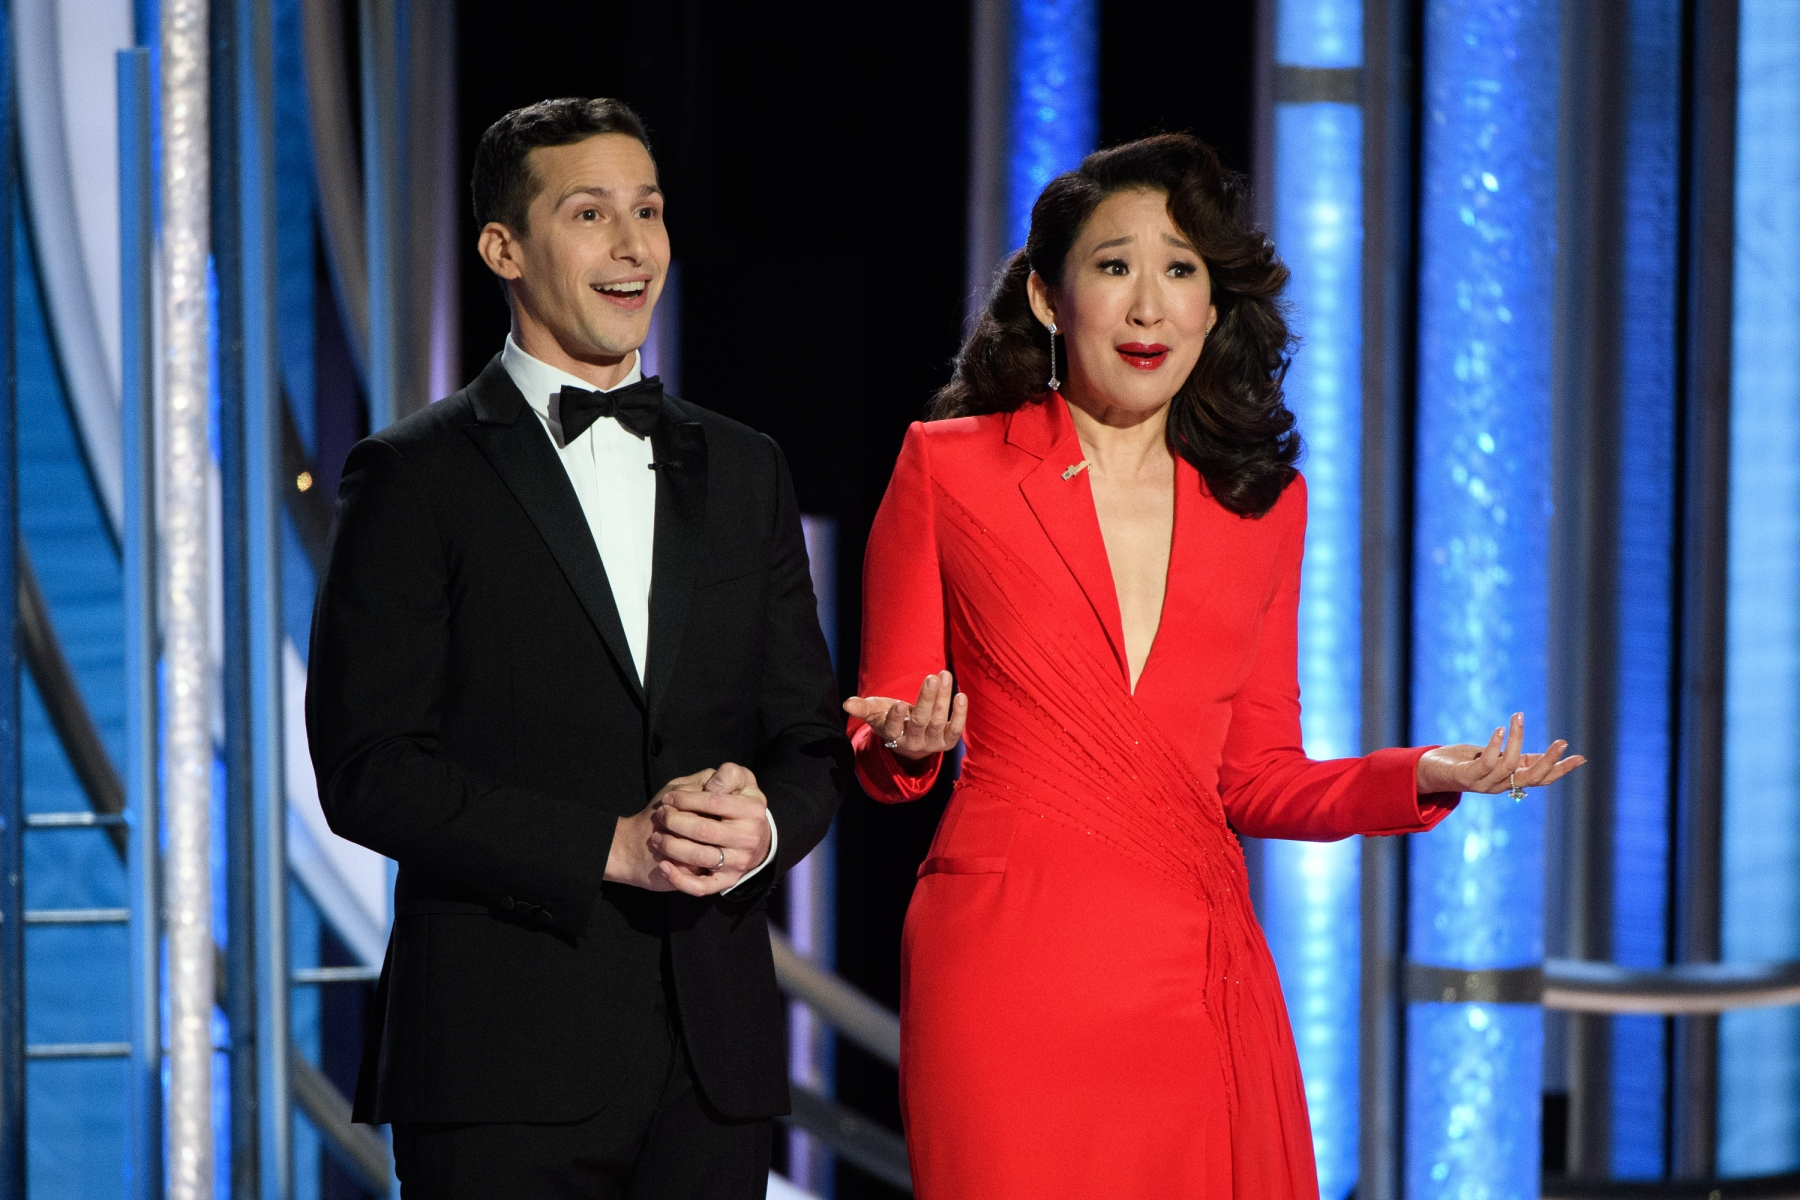 Andy Samberg and Sandra Oh host the 76th Annual Golden Globe Awards at the Beverly Hilton in Beverly Hills, CA on Sunday, January 6, 2019.